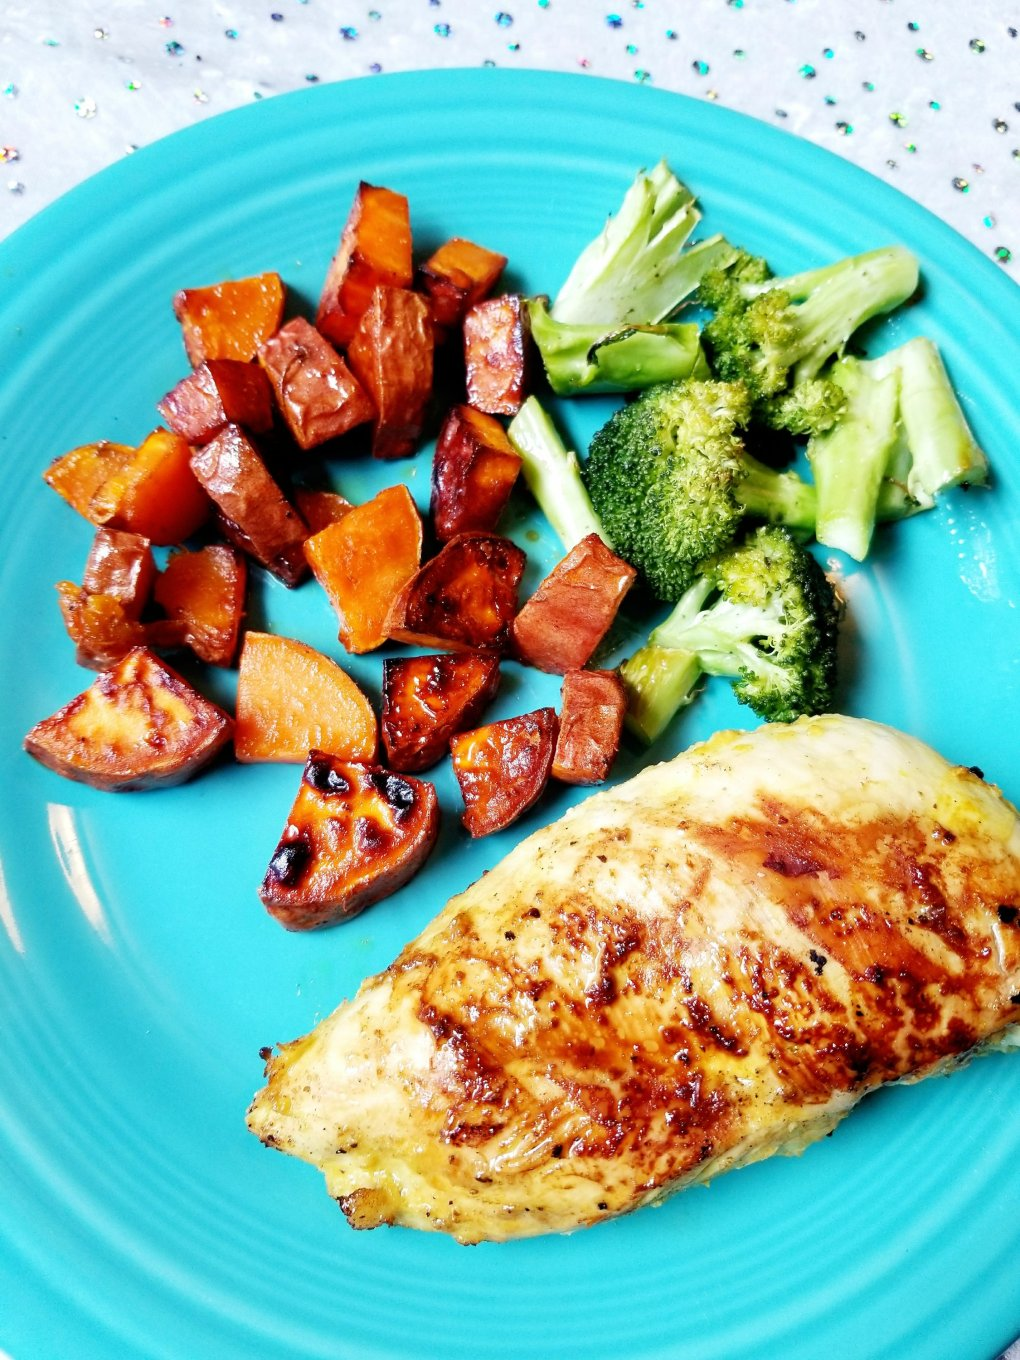 Lemon Turmeric Chicken w/ Primal Kitchen, fried sweet potatoes in ghee, and roasted broccoli